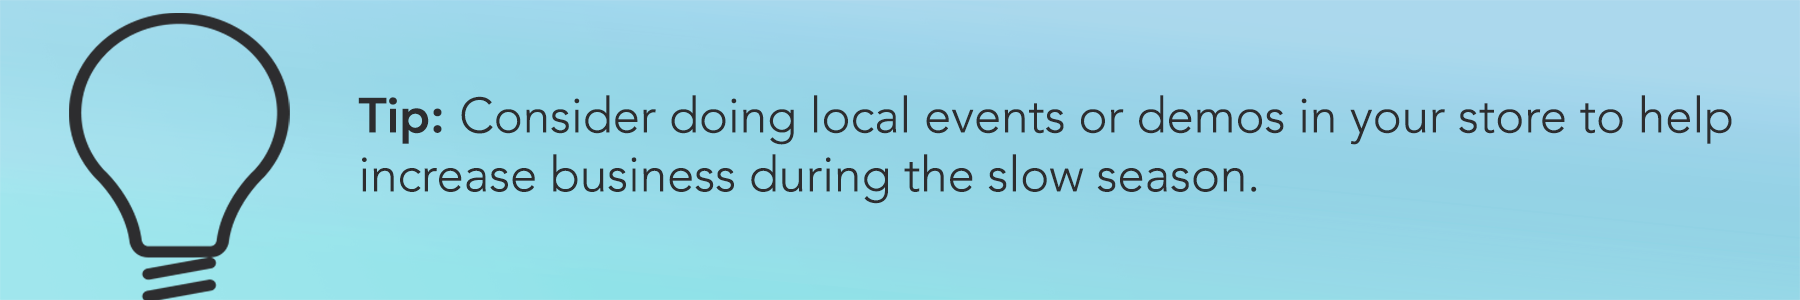 Tip: Consider doing local events or demos in your store to help increase business during the slow season.